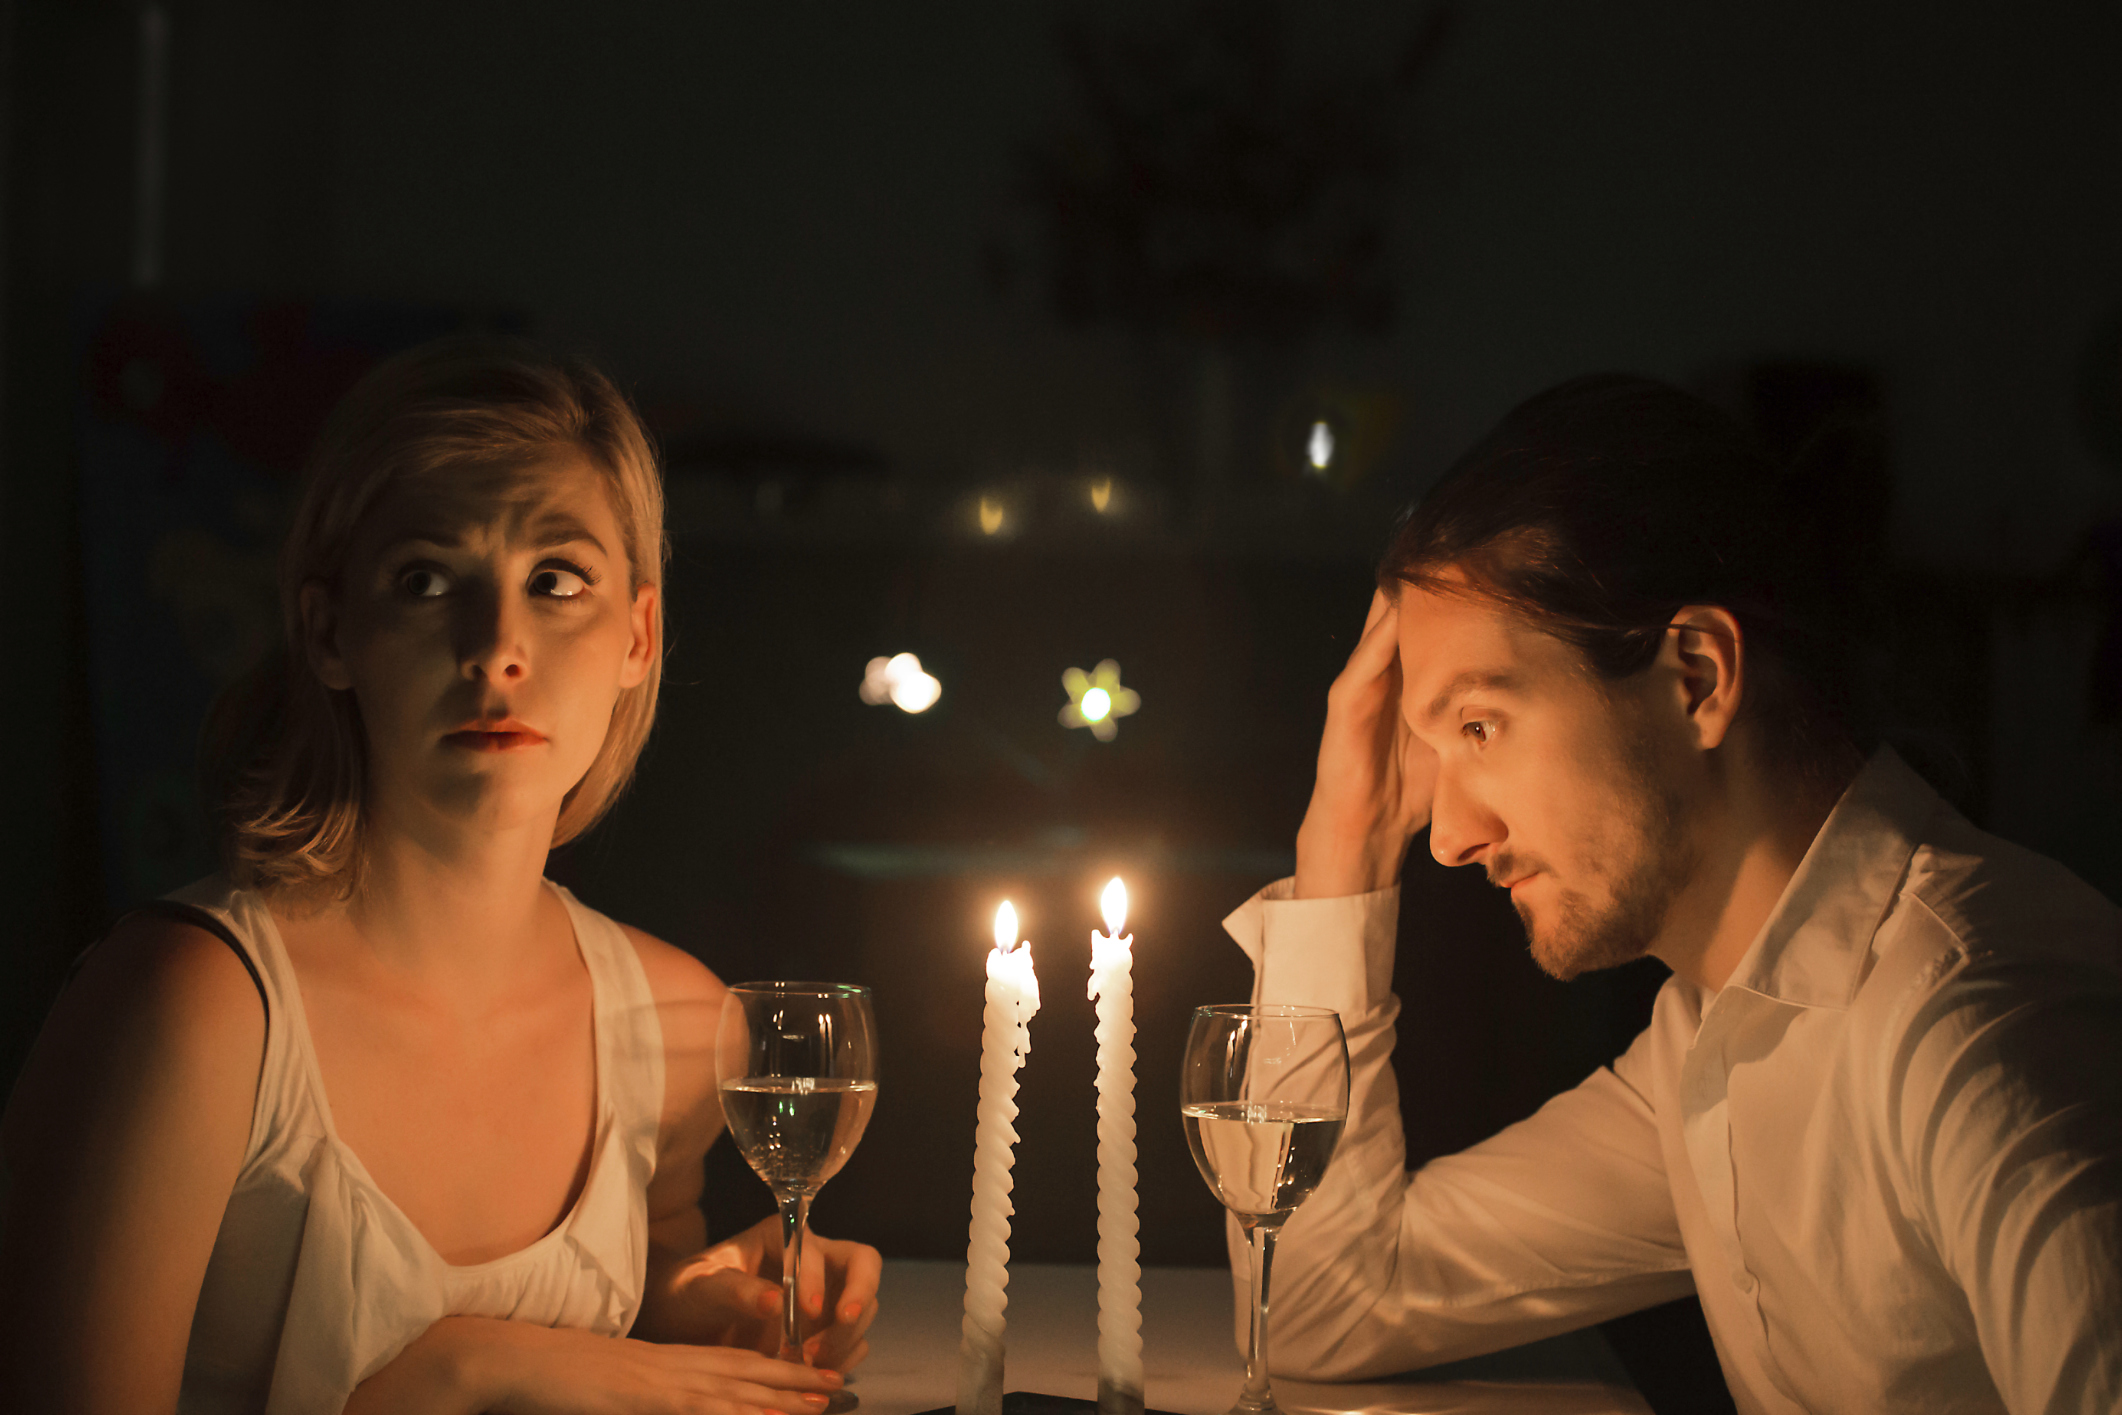 What are your relationship deal breakers?